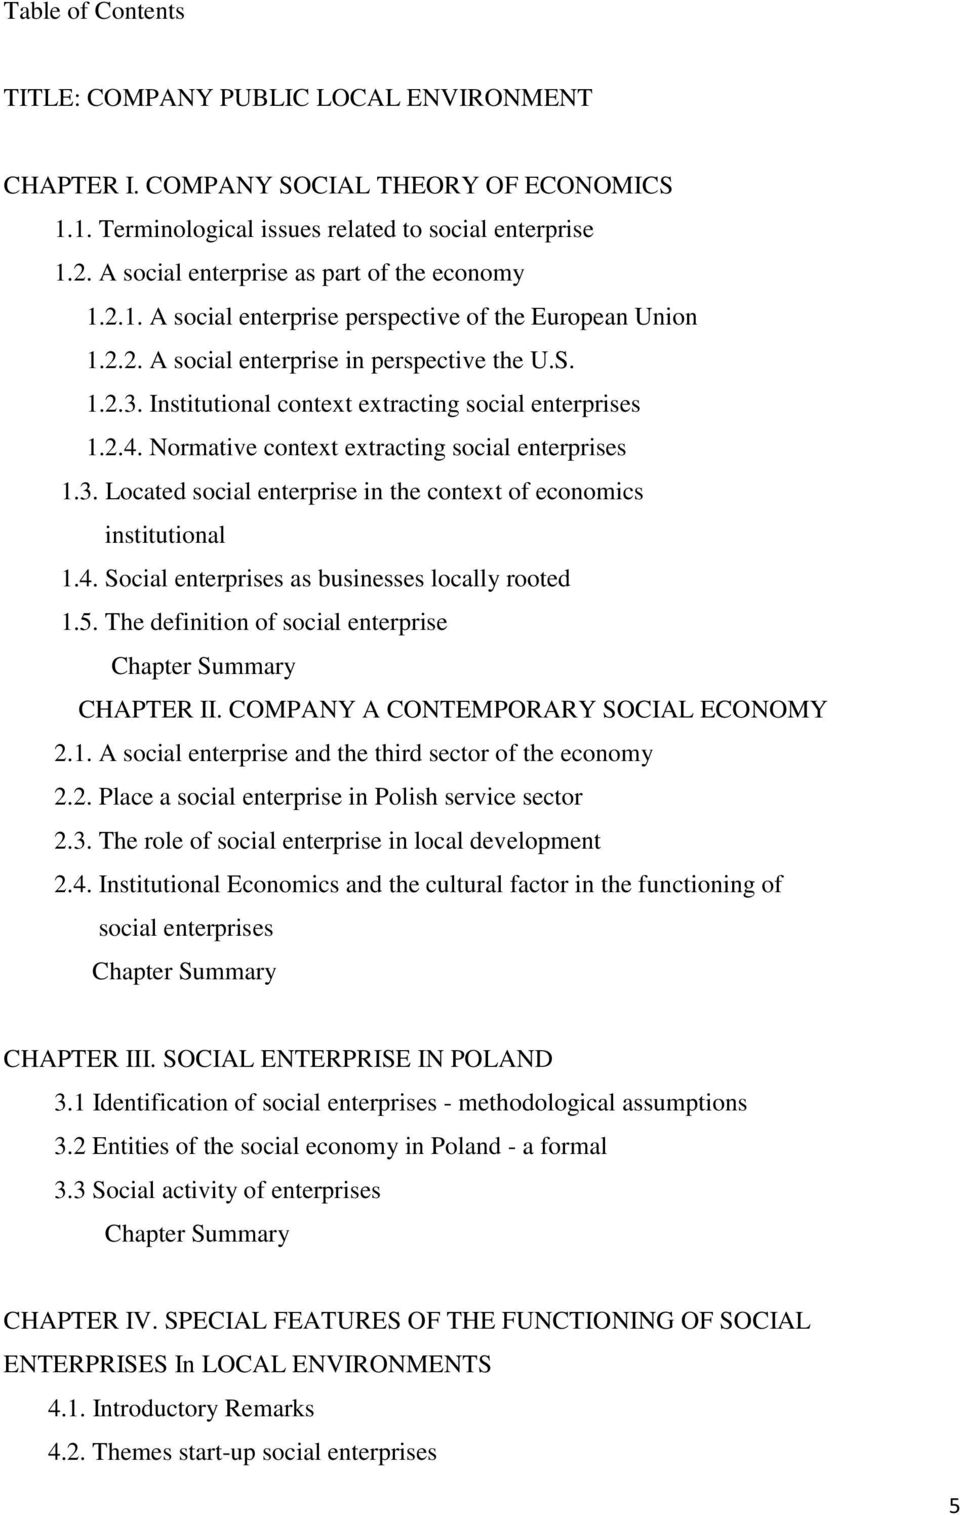 Institutional context extracting social enterprises 1.2.4. Normative context extracting social enterprises 1.3. Located social enterprise in the context of economics institutional 1.4. Social enterprises as businesses locally rooted 1.